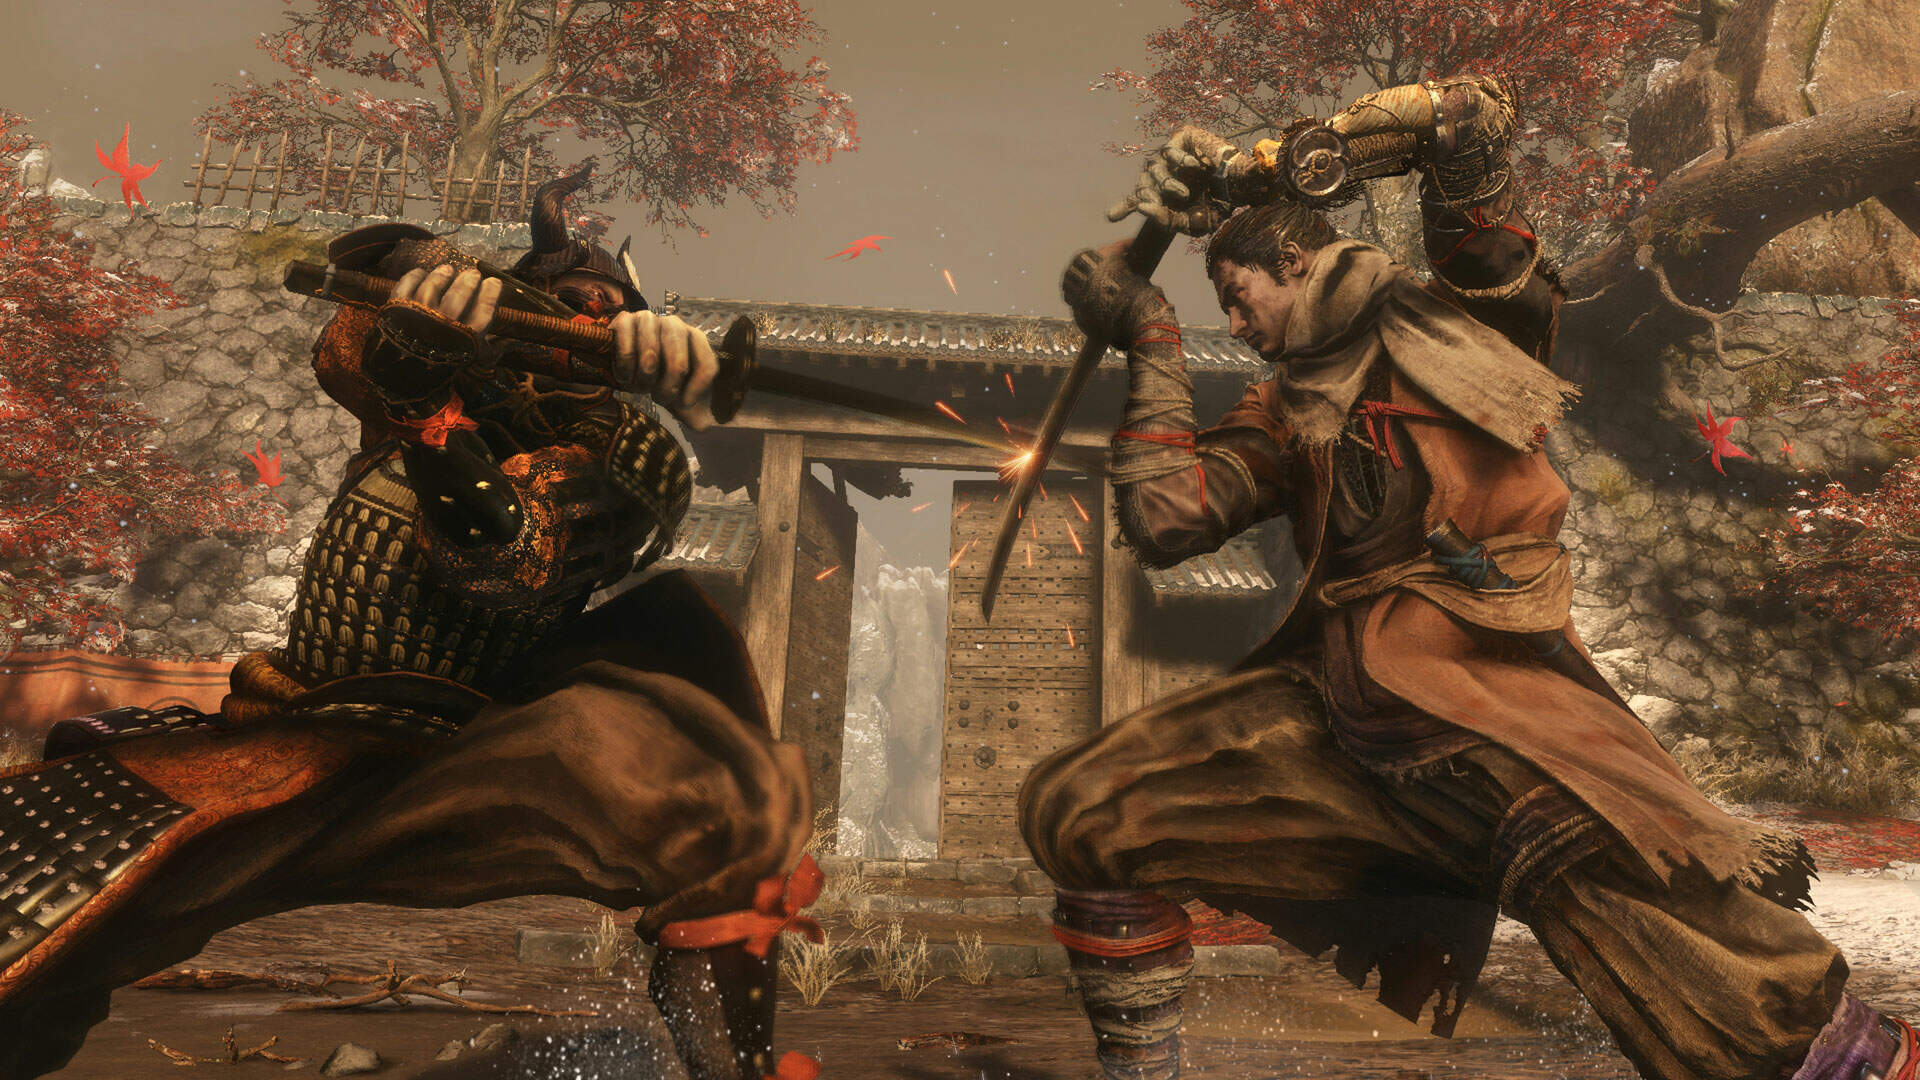 Sekiro: How to Beat the Corrupted Monk Easily